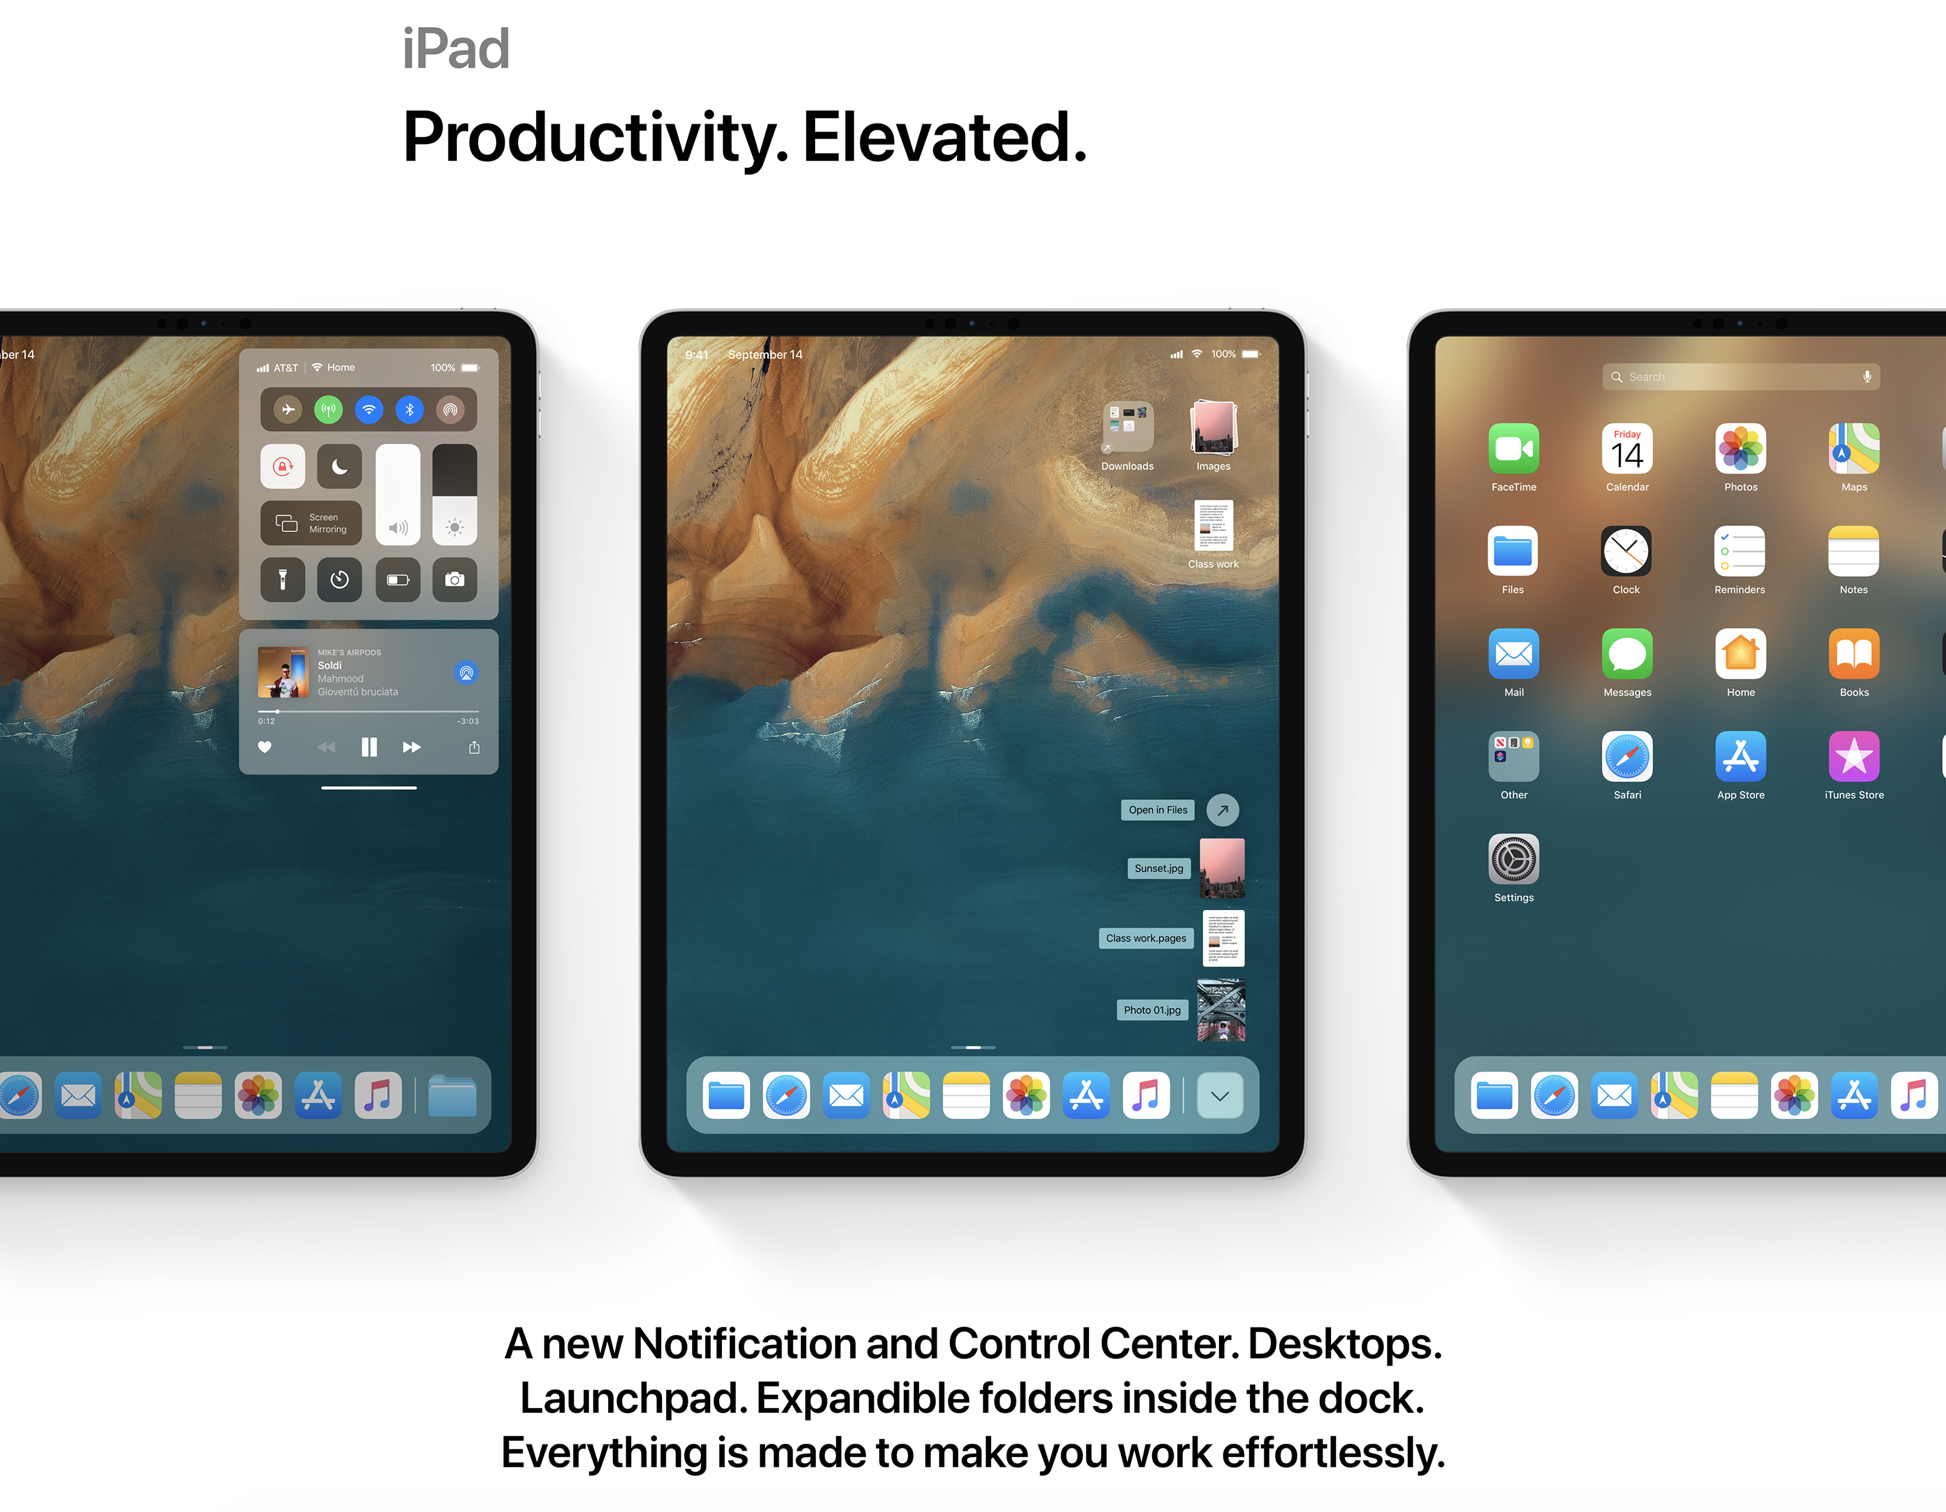 iOS 13 new iPad experience